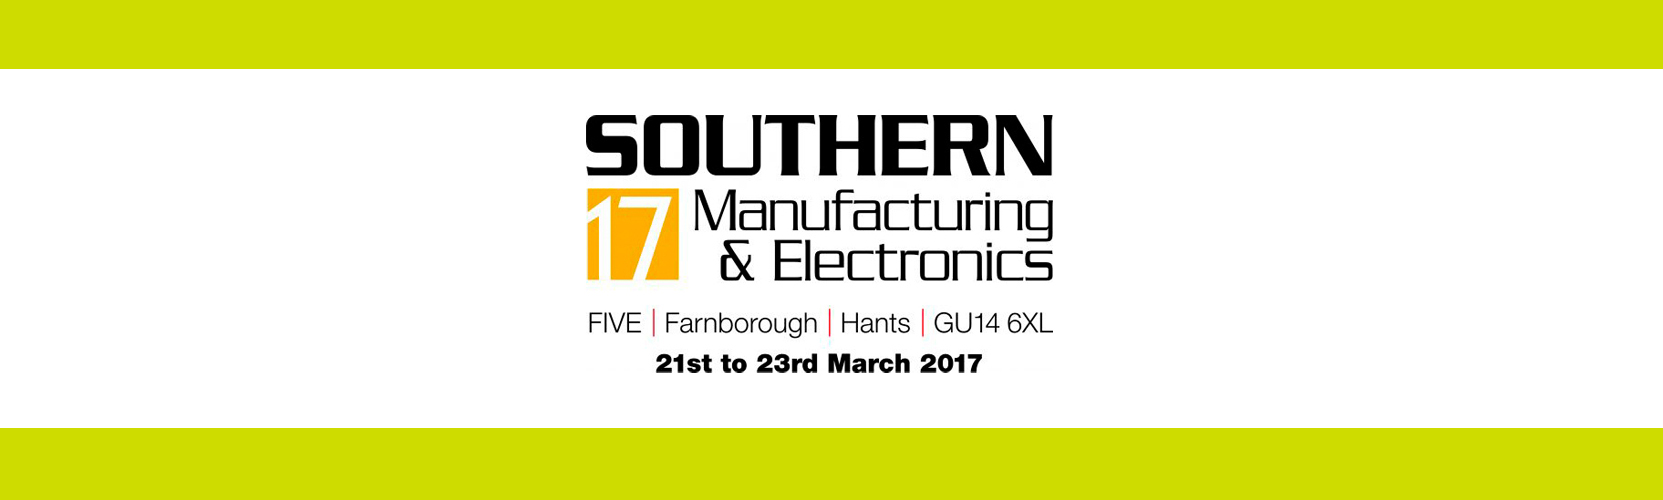 Southern Manufacturing 2017 - Broanmain Plastics